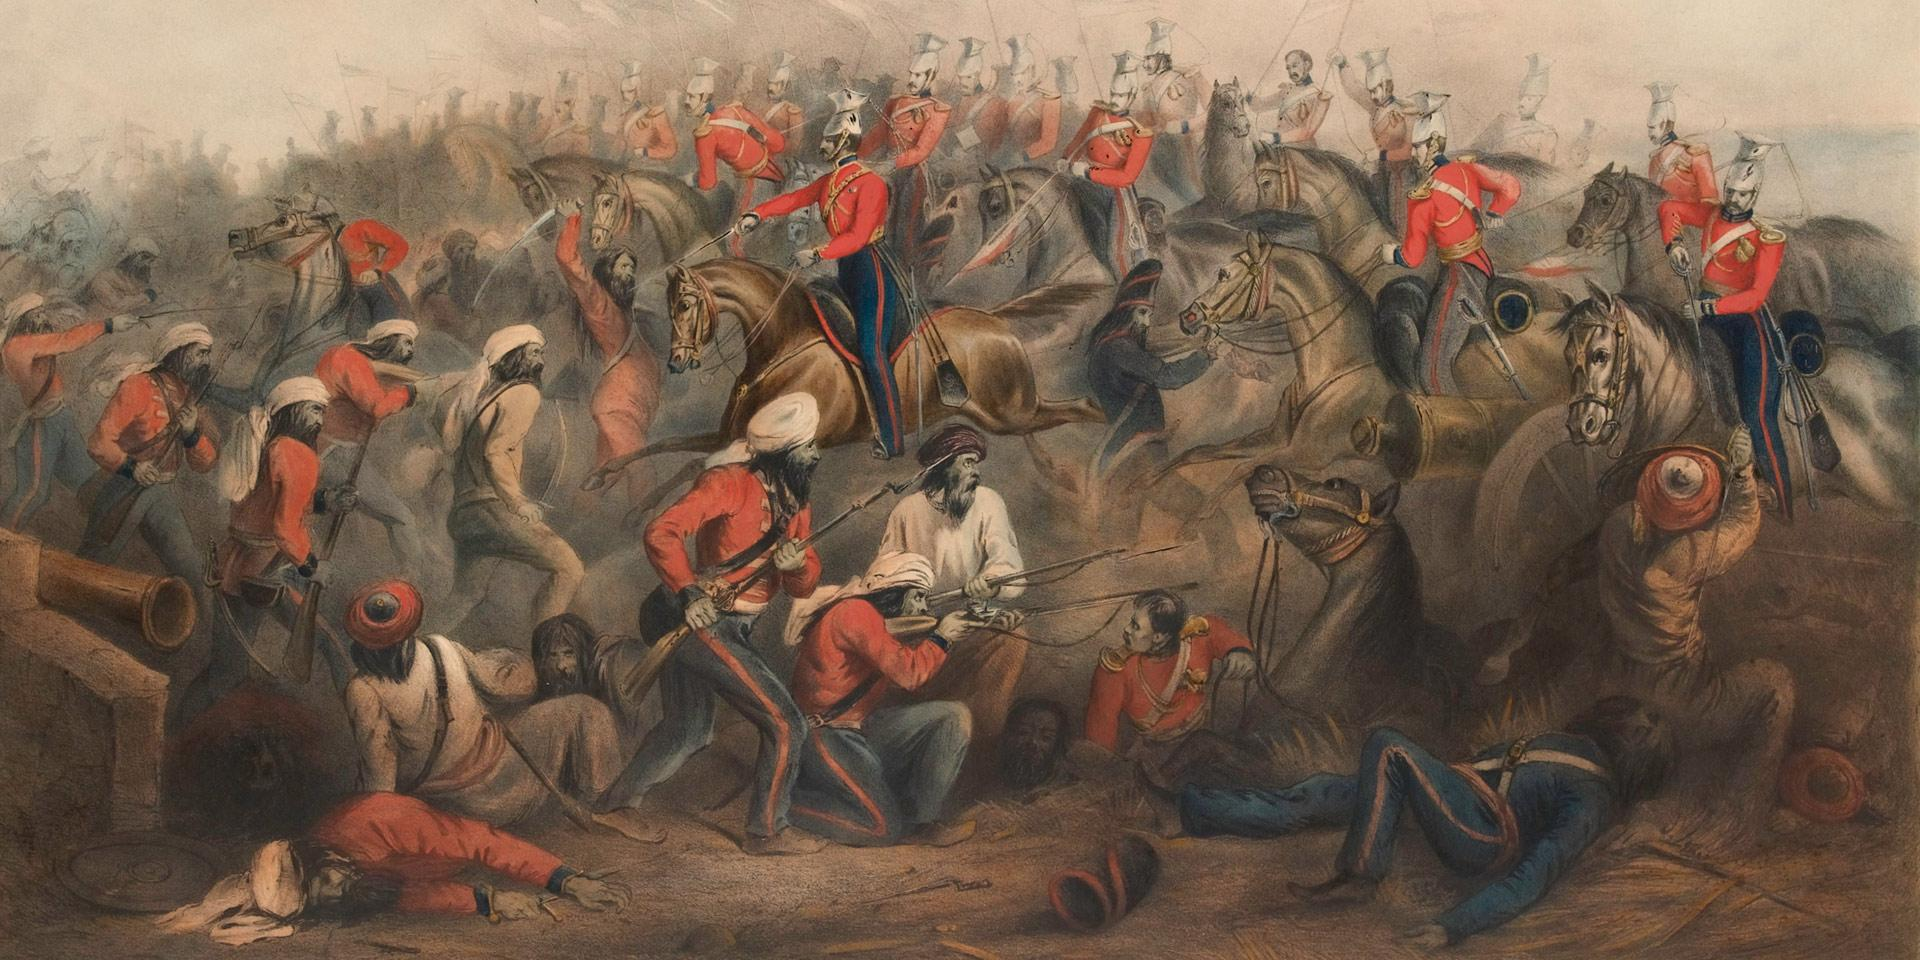 The Battle of Aliwal, 28 January 1846